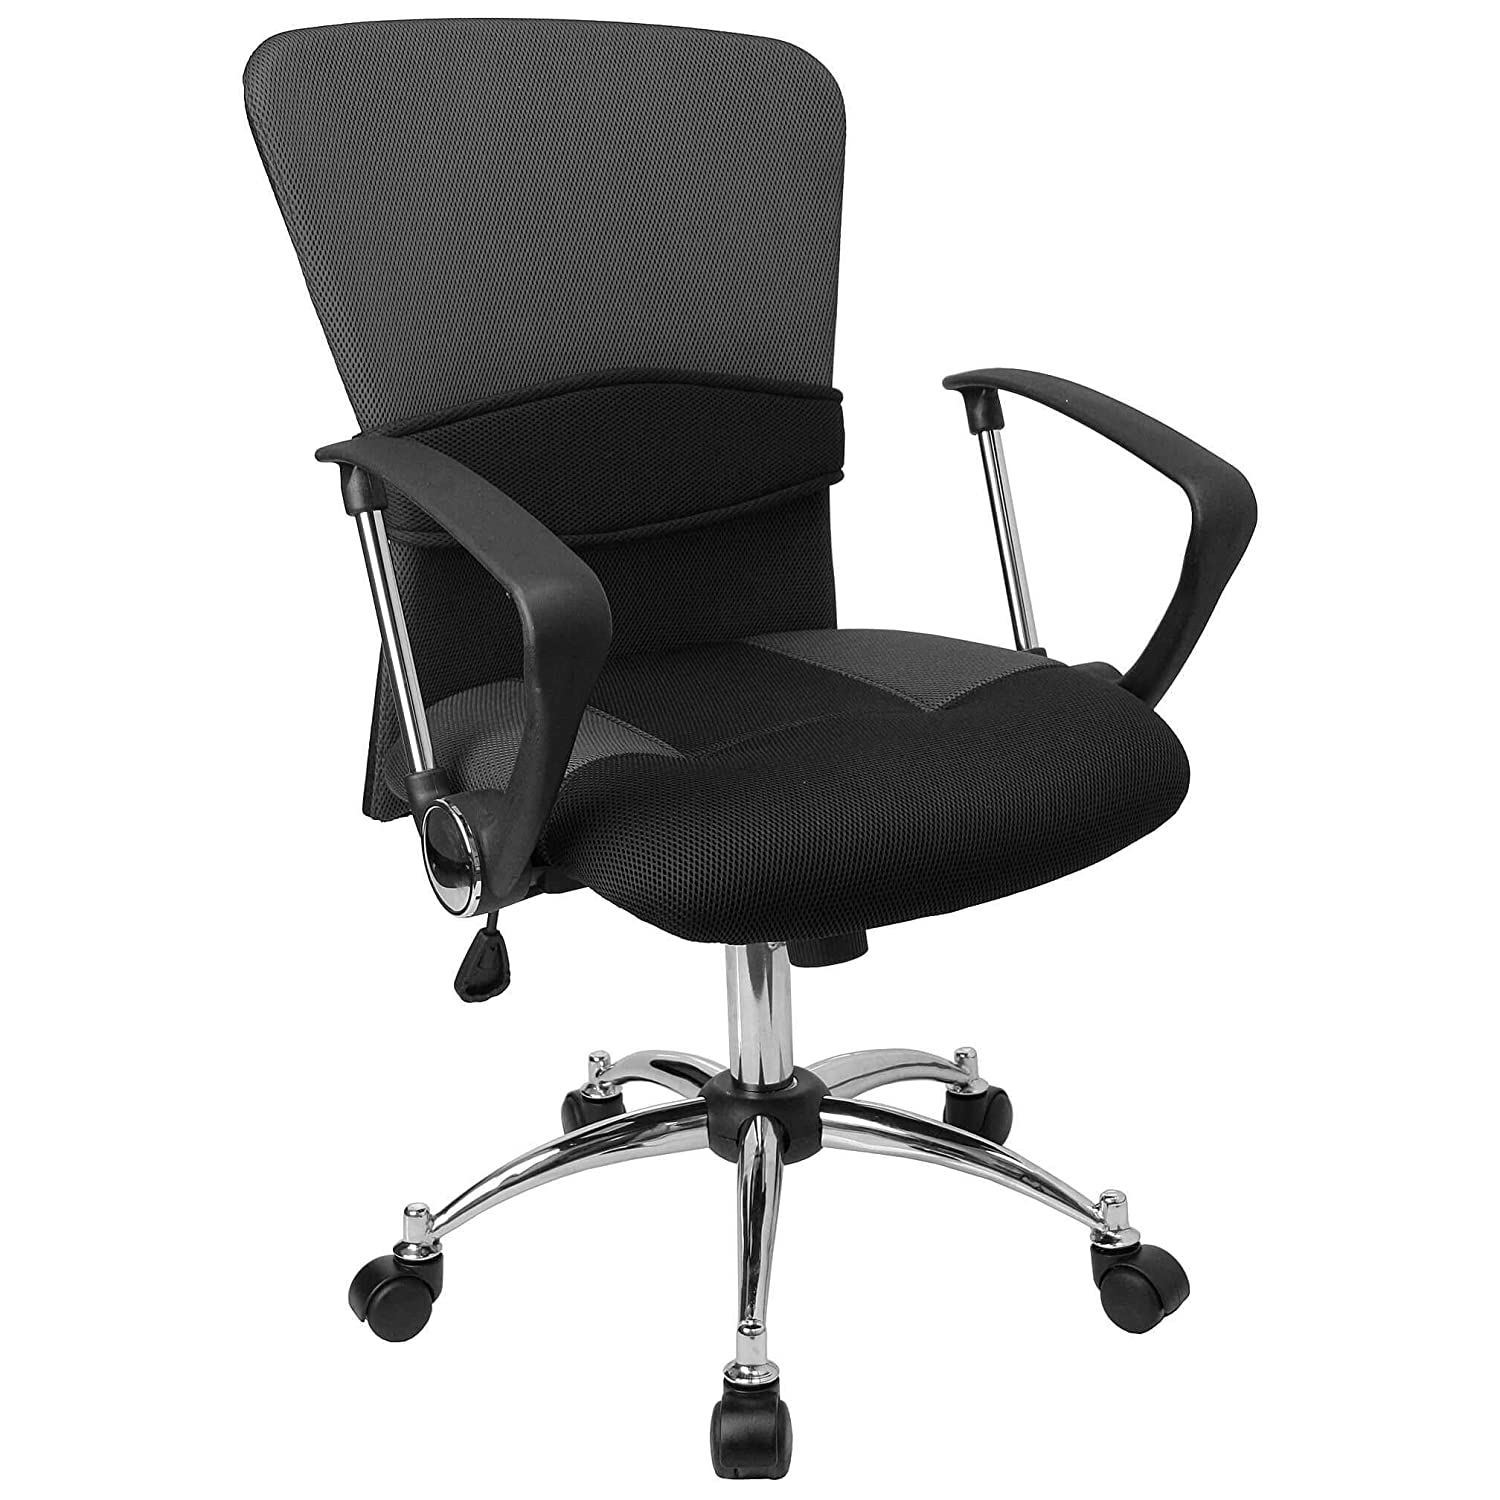 Unusual office chairs Exciting Amazoncom Cool Office Chairs Night Star Lumbar Support Office Chair Office Products Amazoncom Amazoncom Cool Office Chairs Night Star Lumbar Support Office